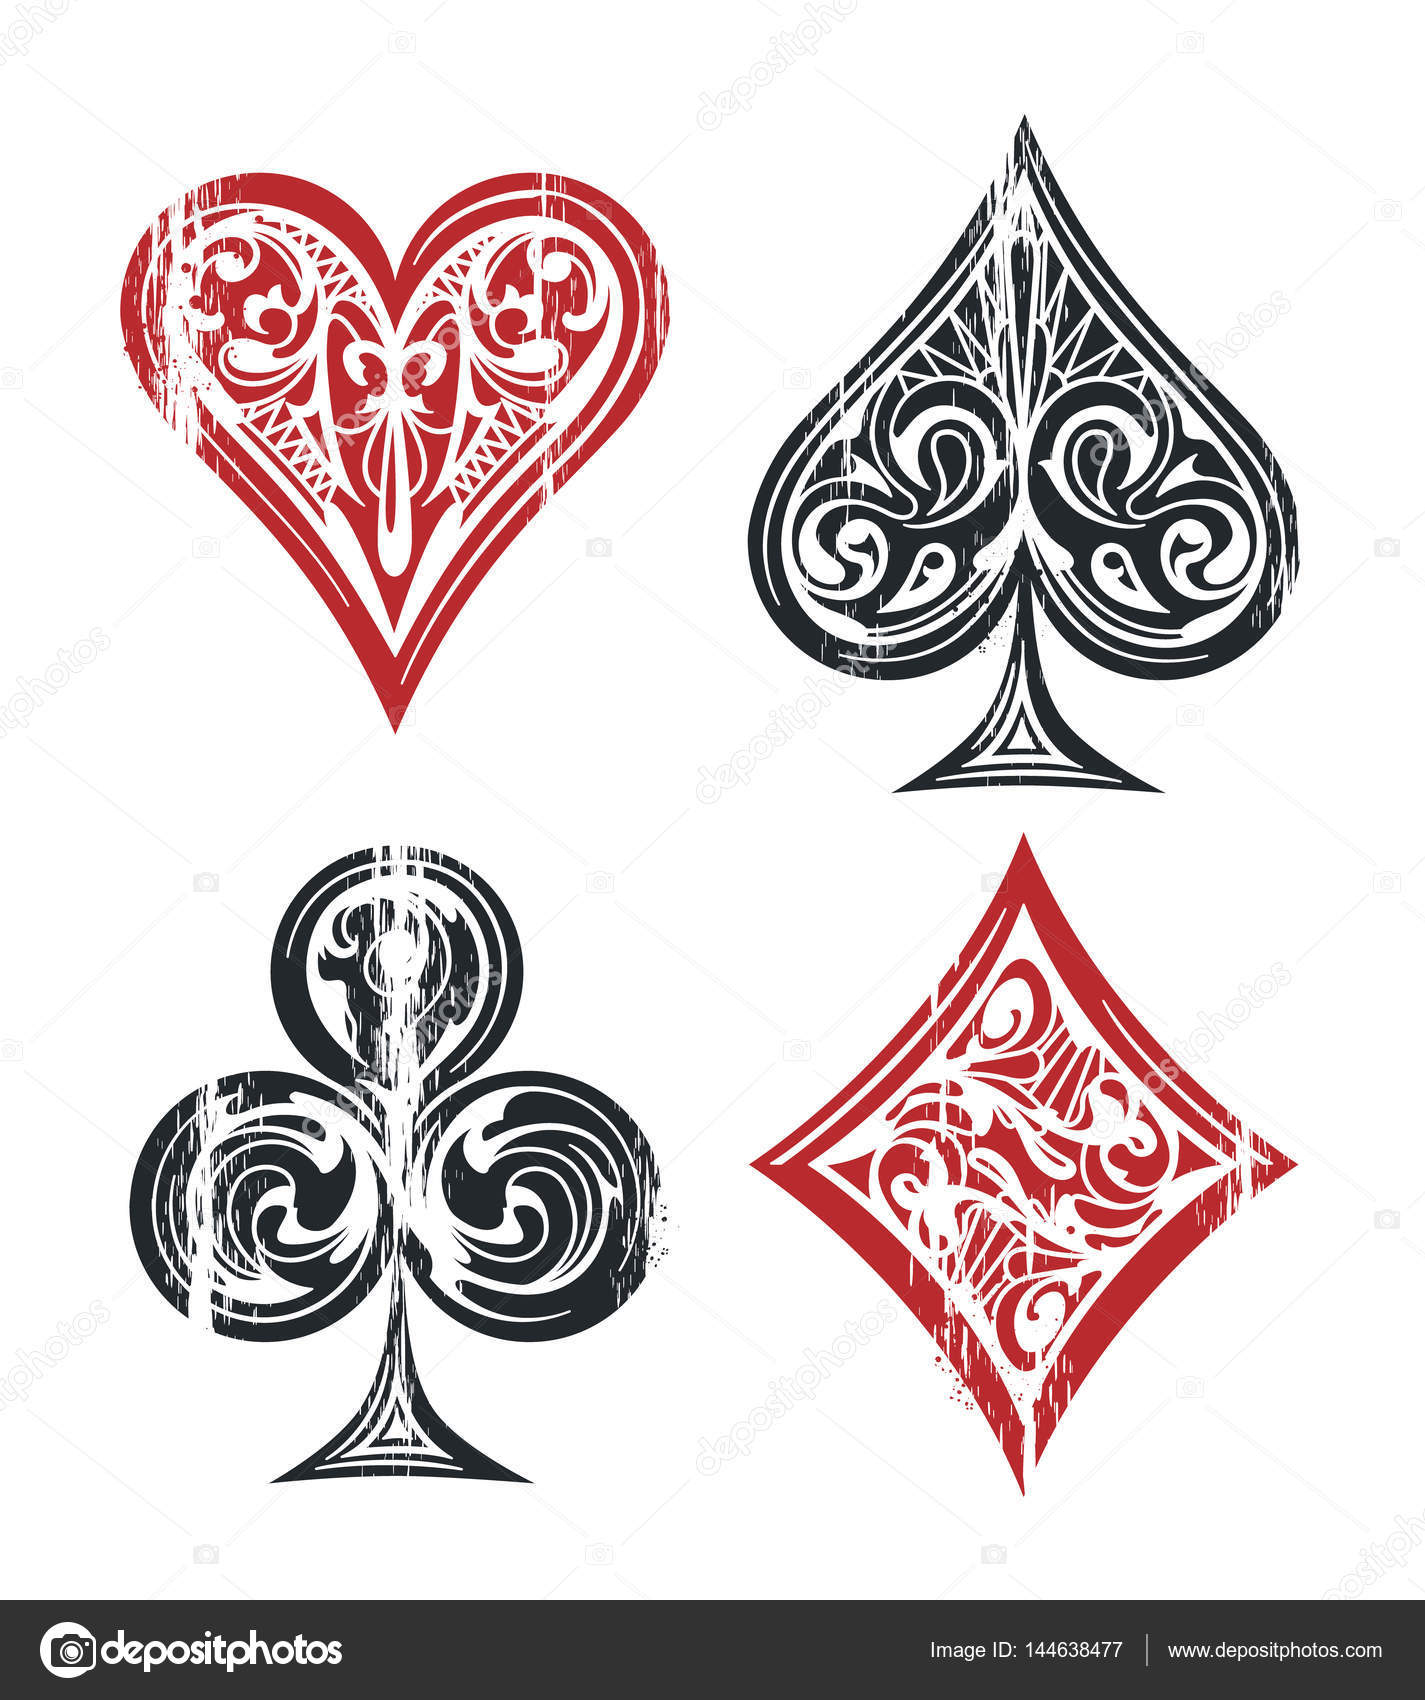 Playing cards symbols stock vector vecster 144638477 card suit vintage symbols isolated on white weathered graphic of playing cards symbols with vintage patterns vector graphic vector by vecster biocorpaavc